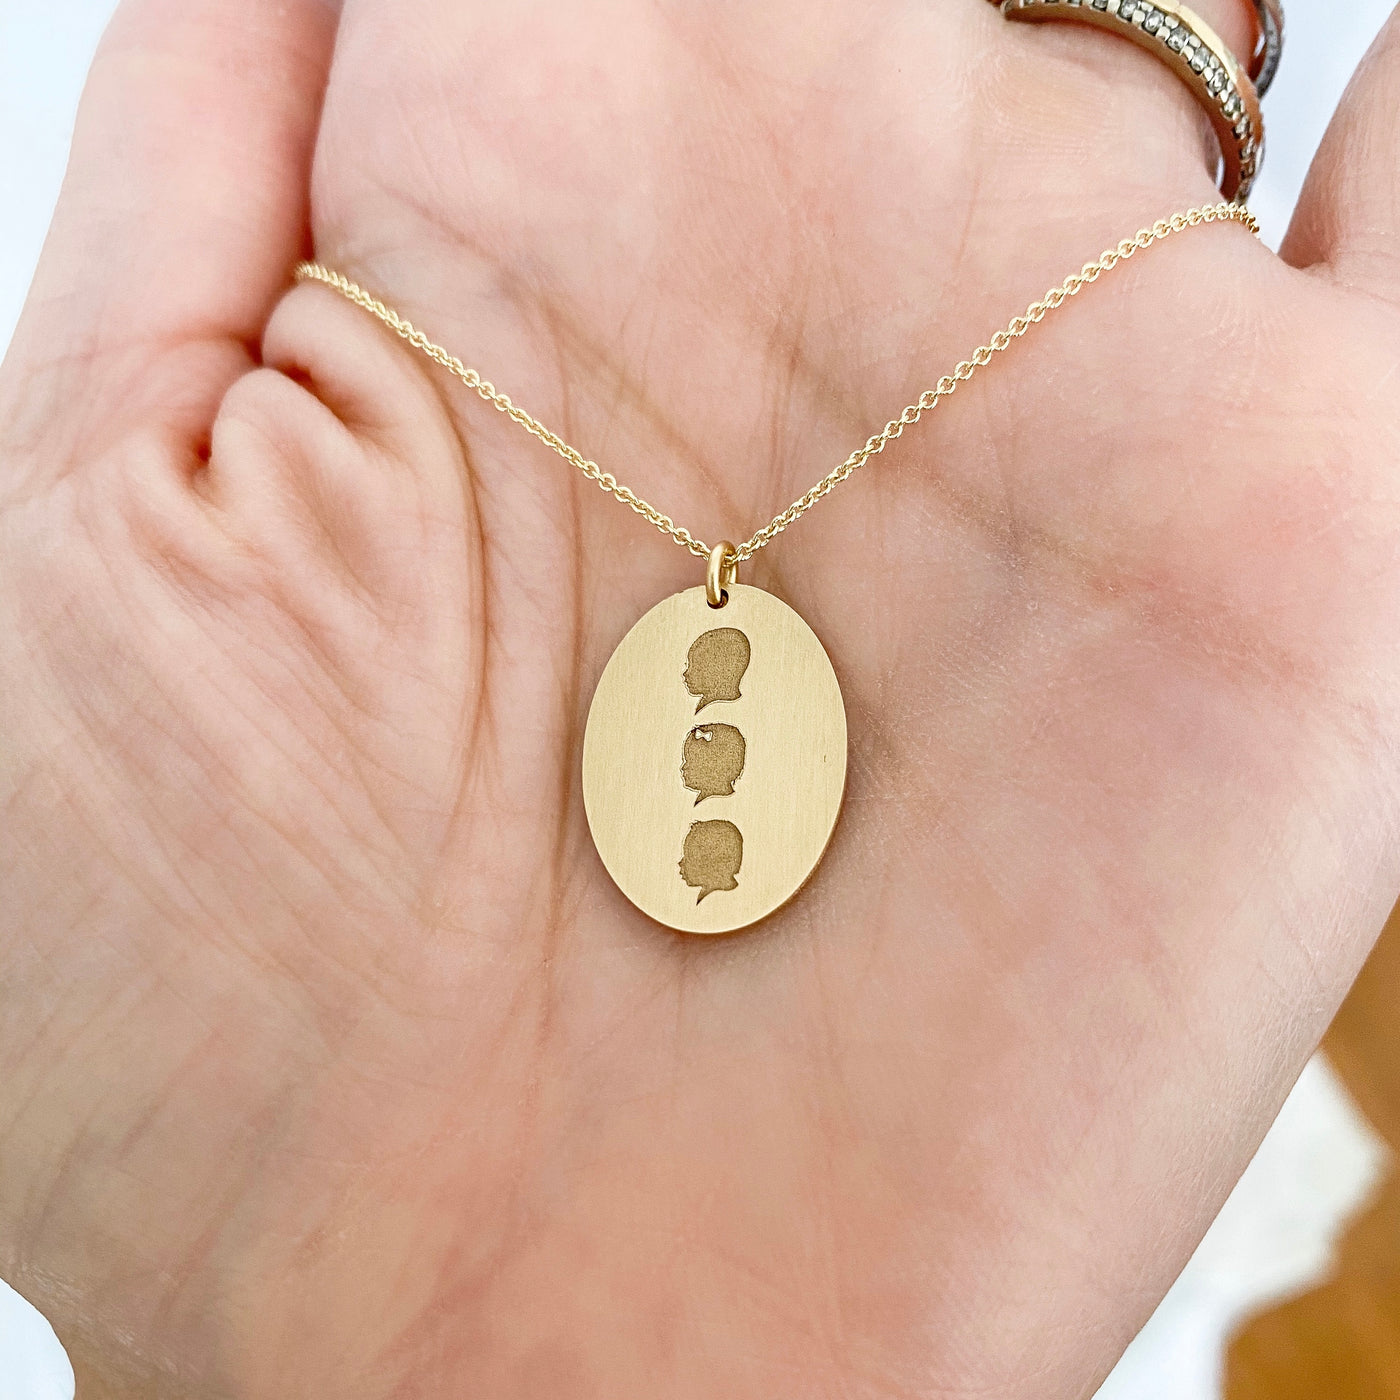 The Family Silhouette Coin Necklace